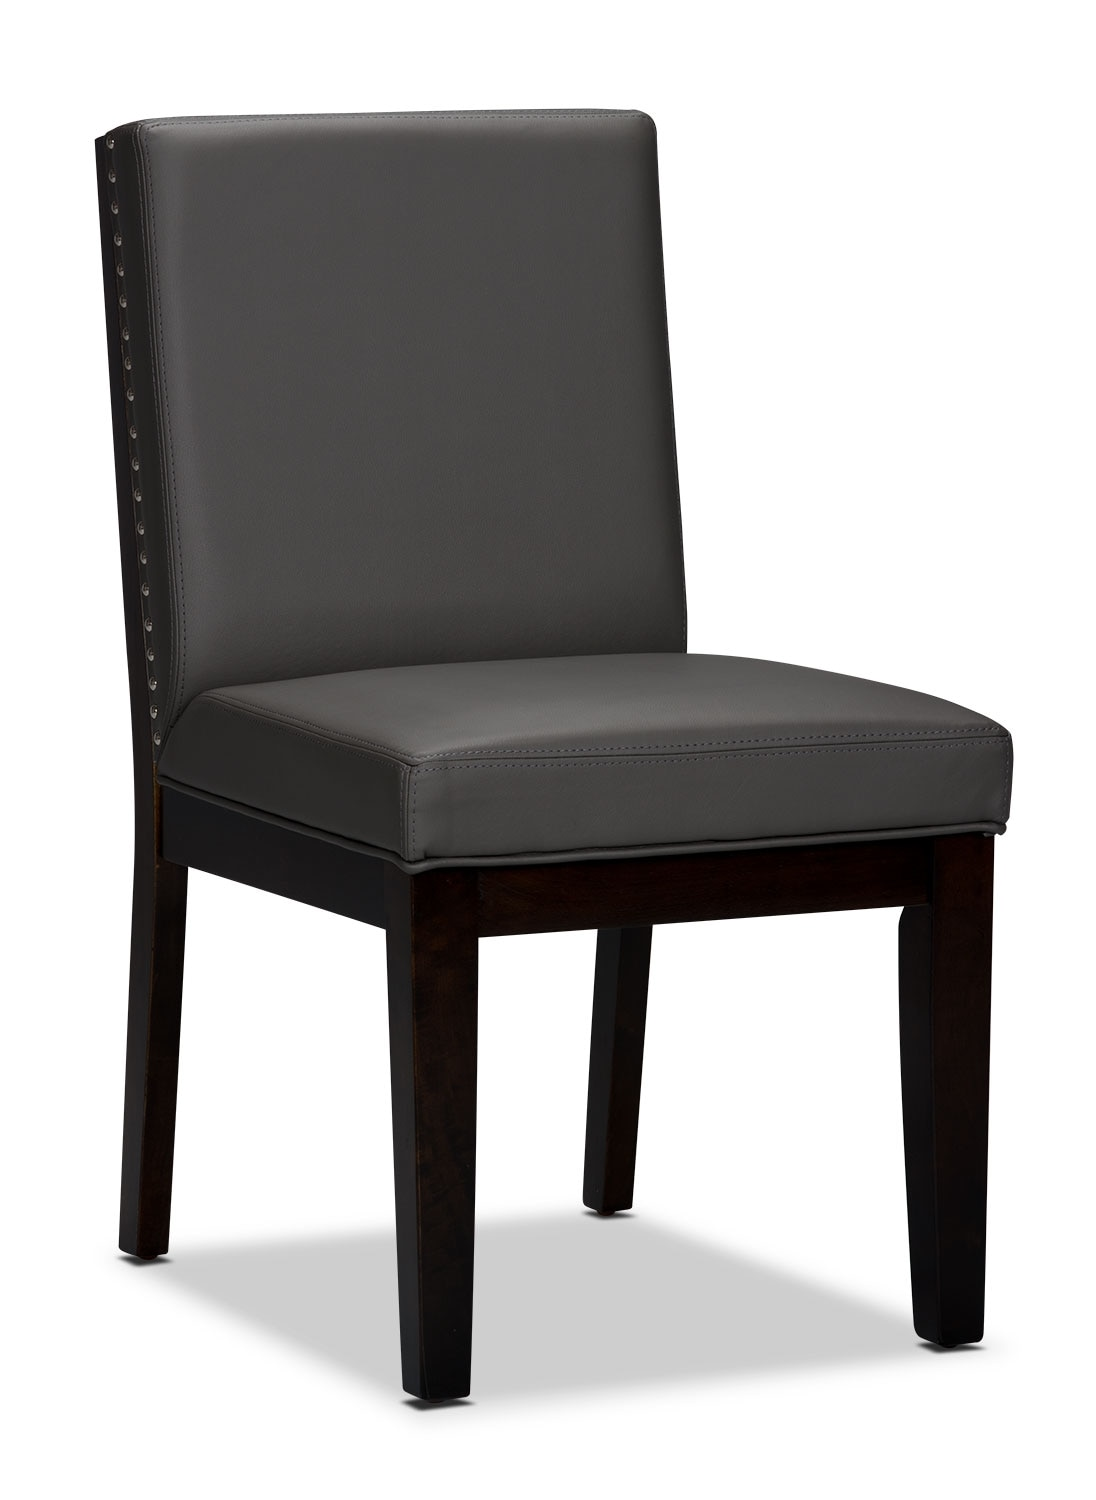 Dining Room Furniture - Couture Side Chair - Grey